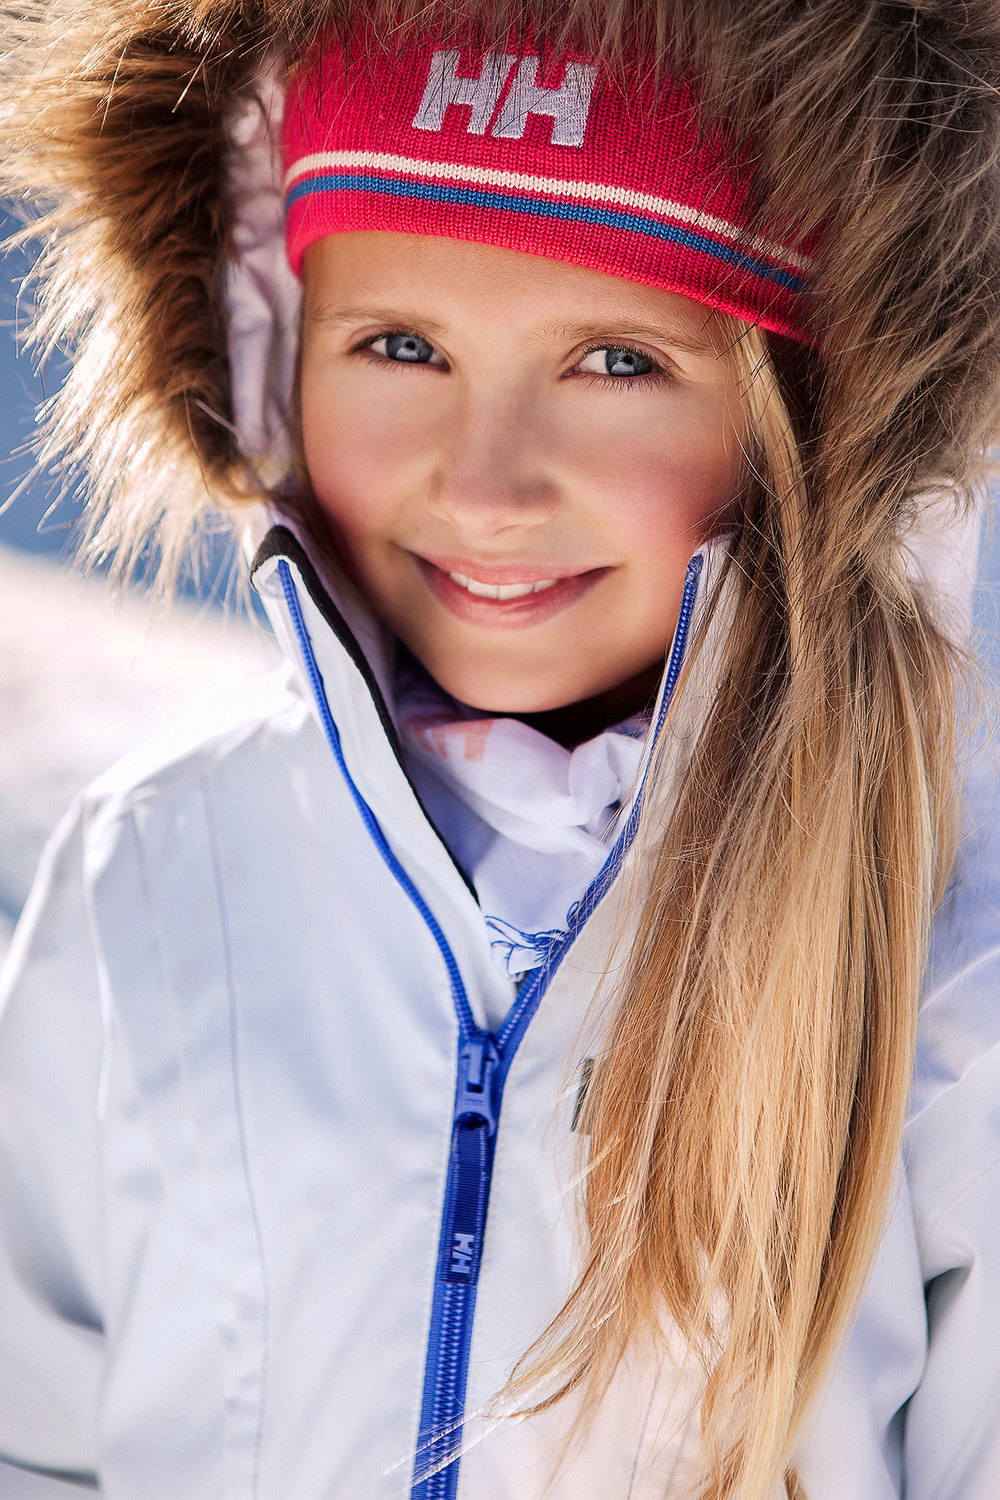 Helly Hansen Kids Photo Cato Aurtun 006photo Cato Aurtun.jpg